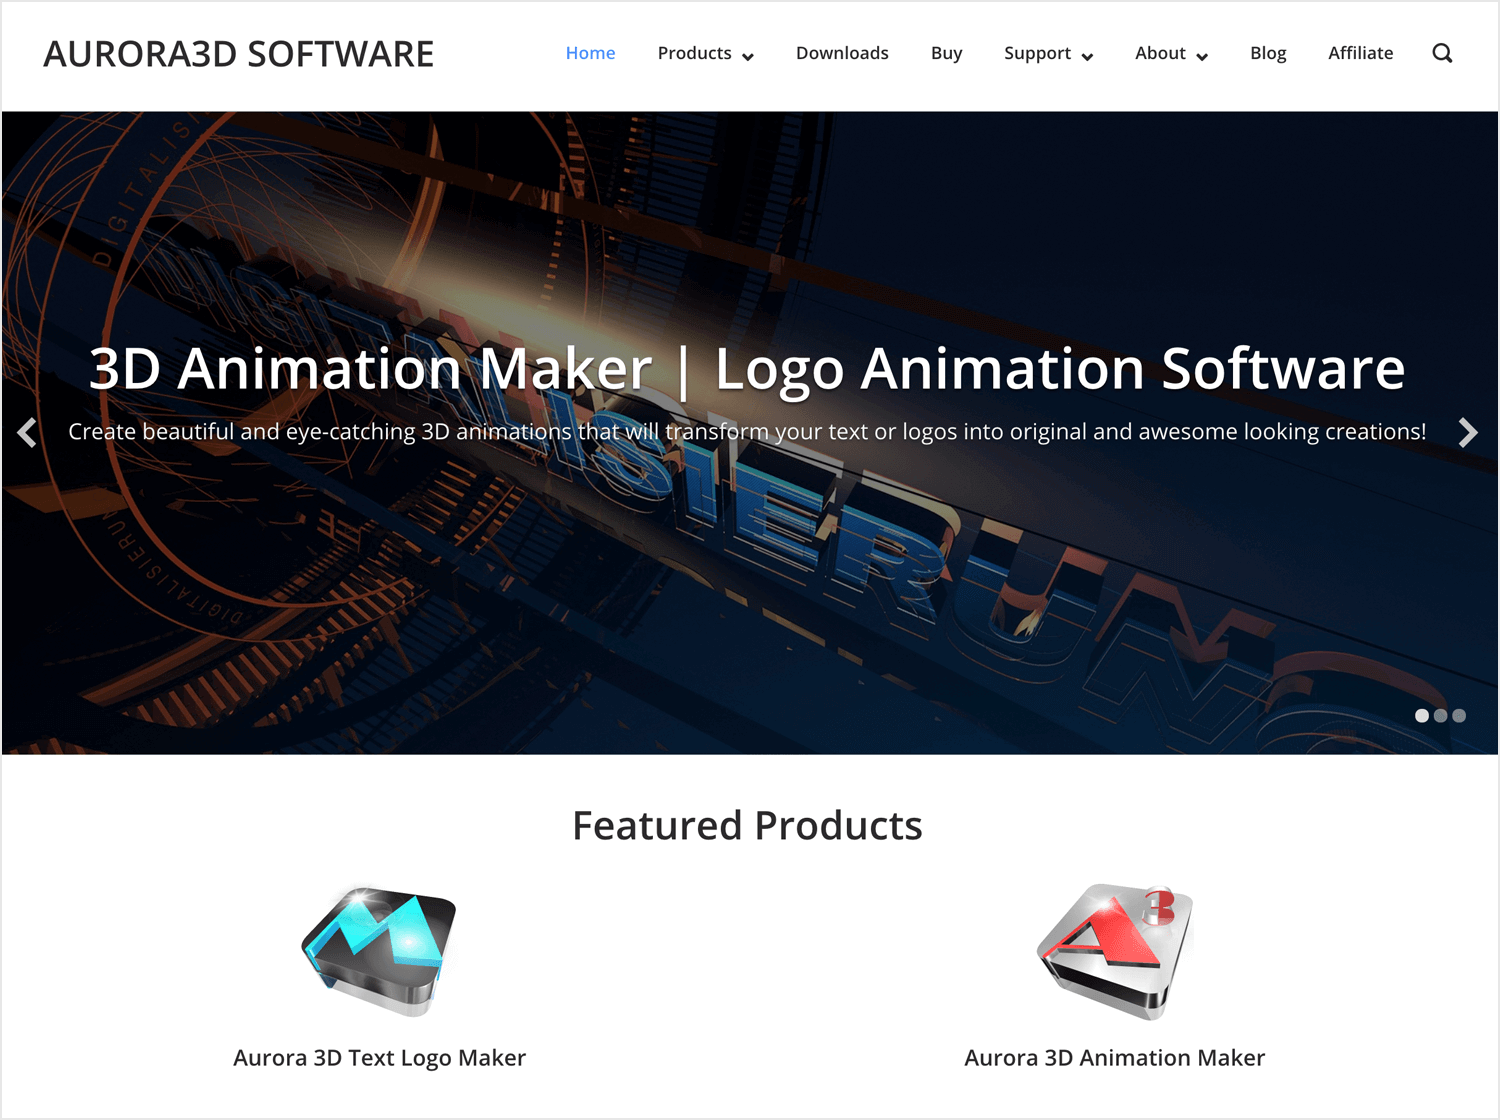 Animation apps for desktop - Aurora 3D Animation Maker